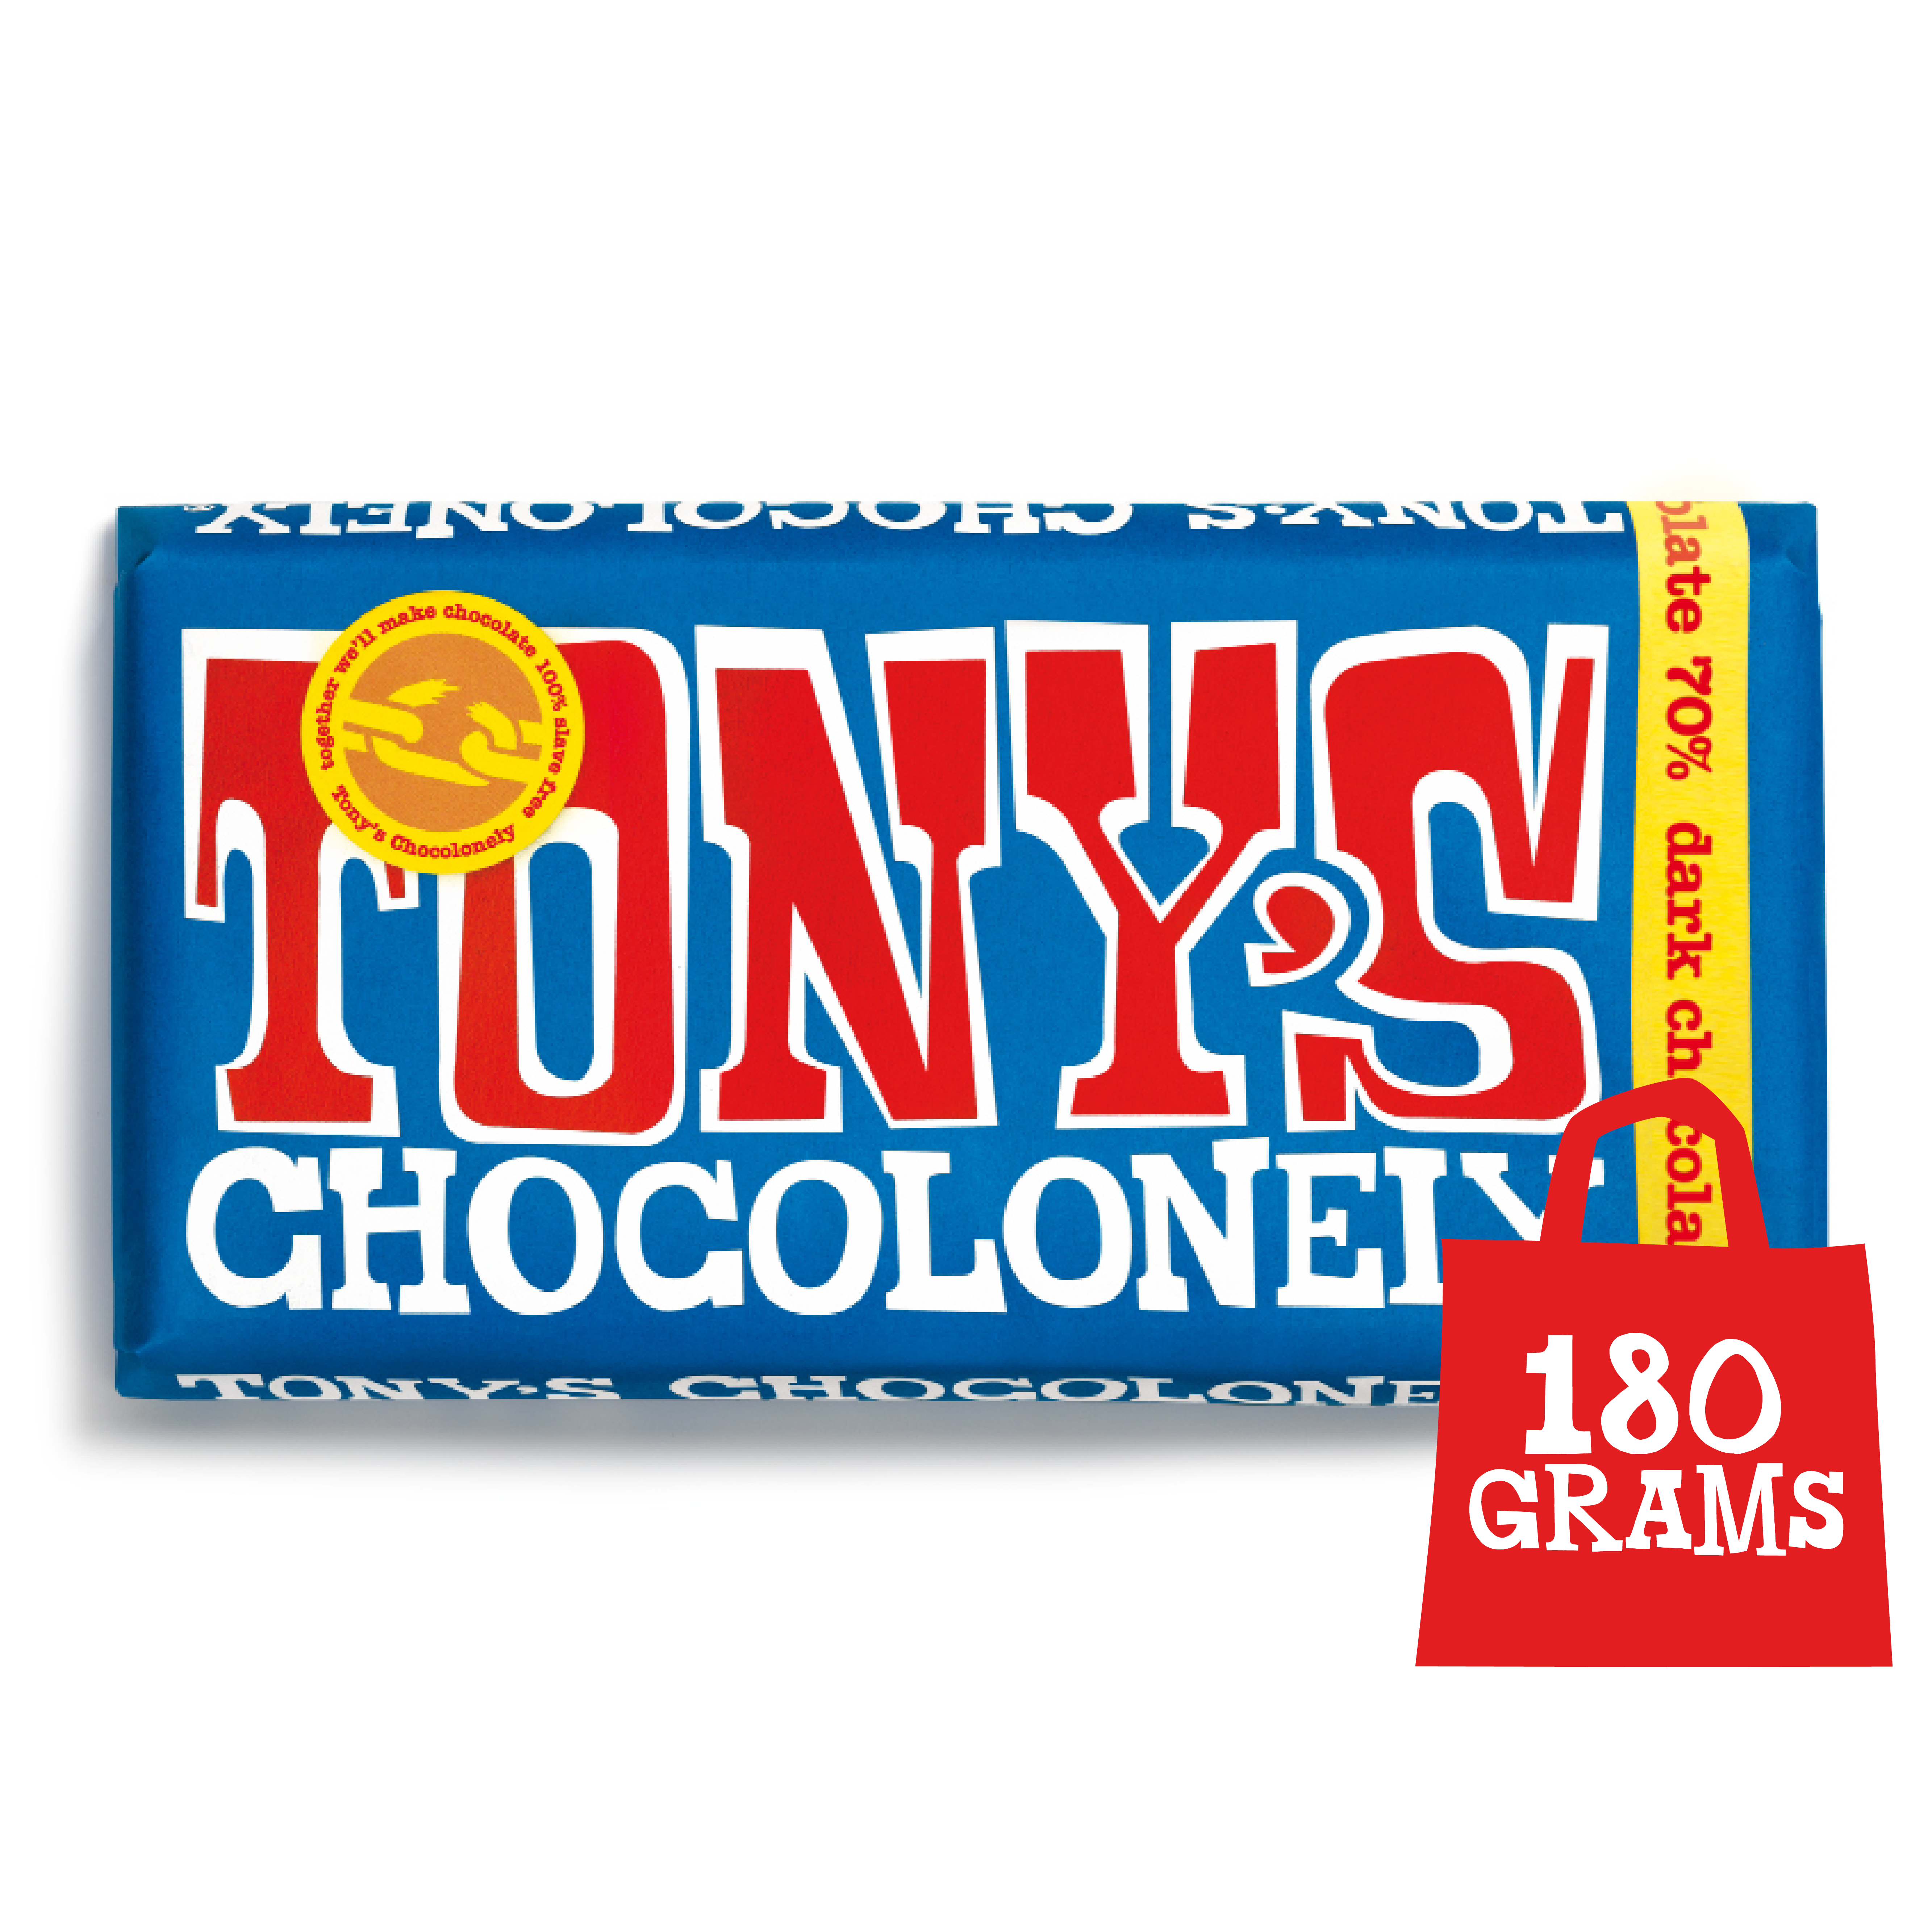 Extra Dark Chocolate 70% | Tony's Chocolonely